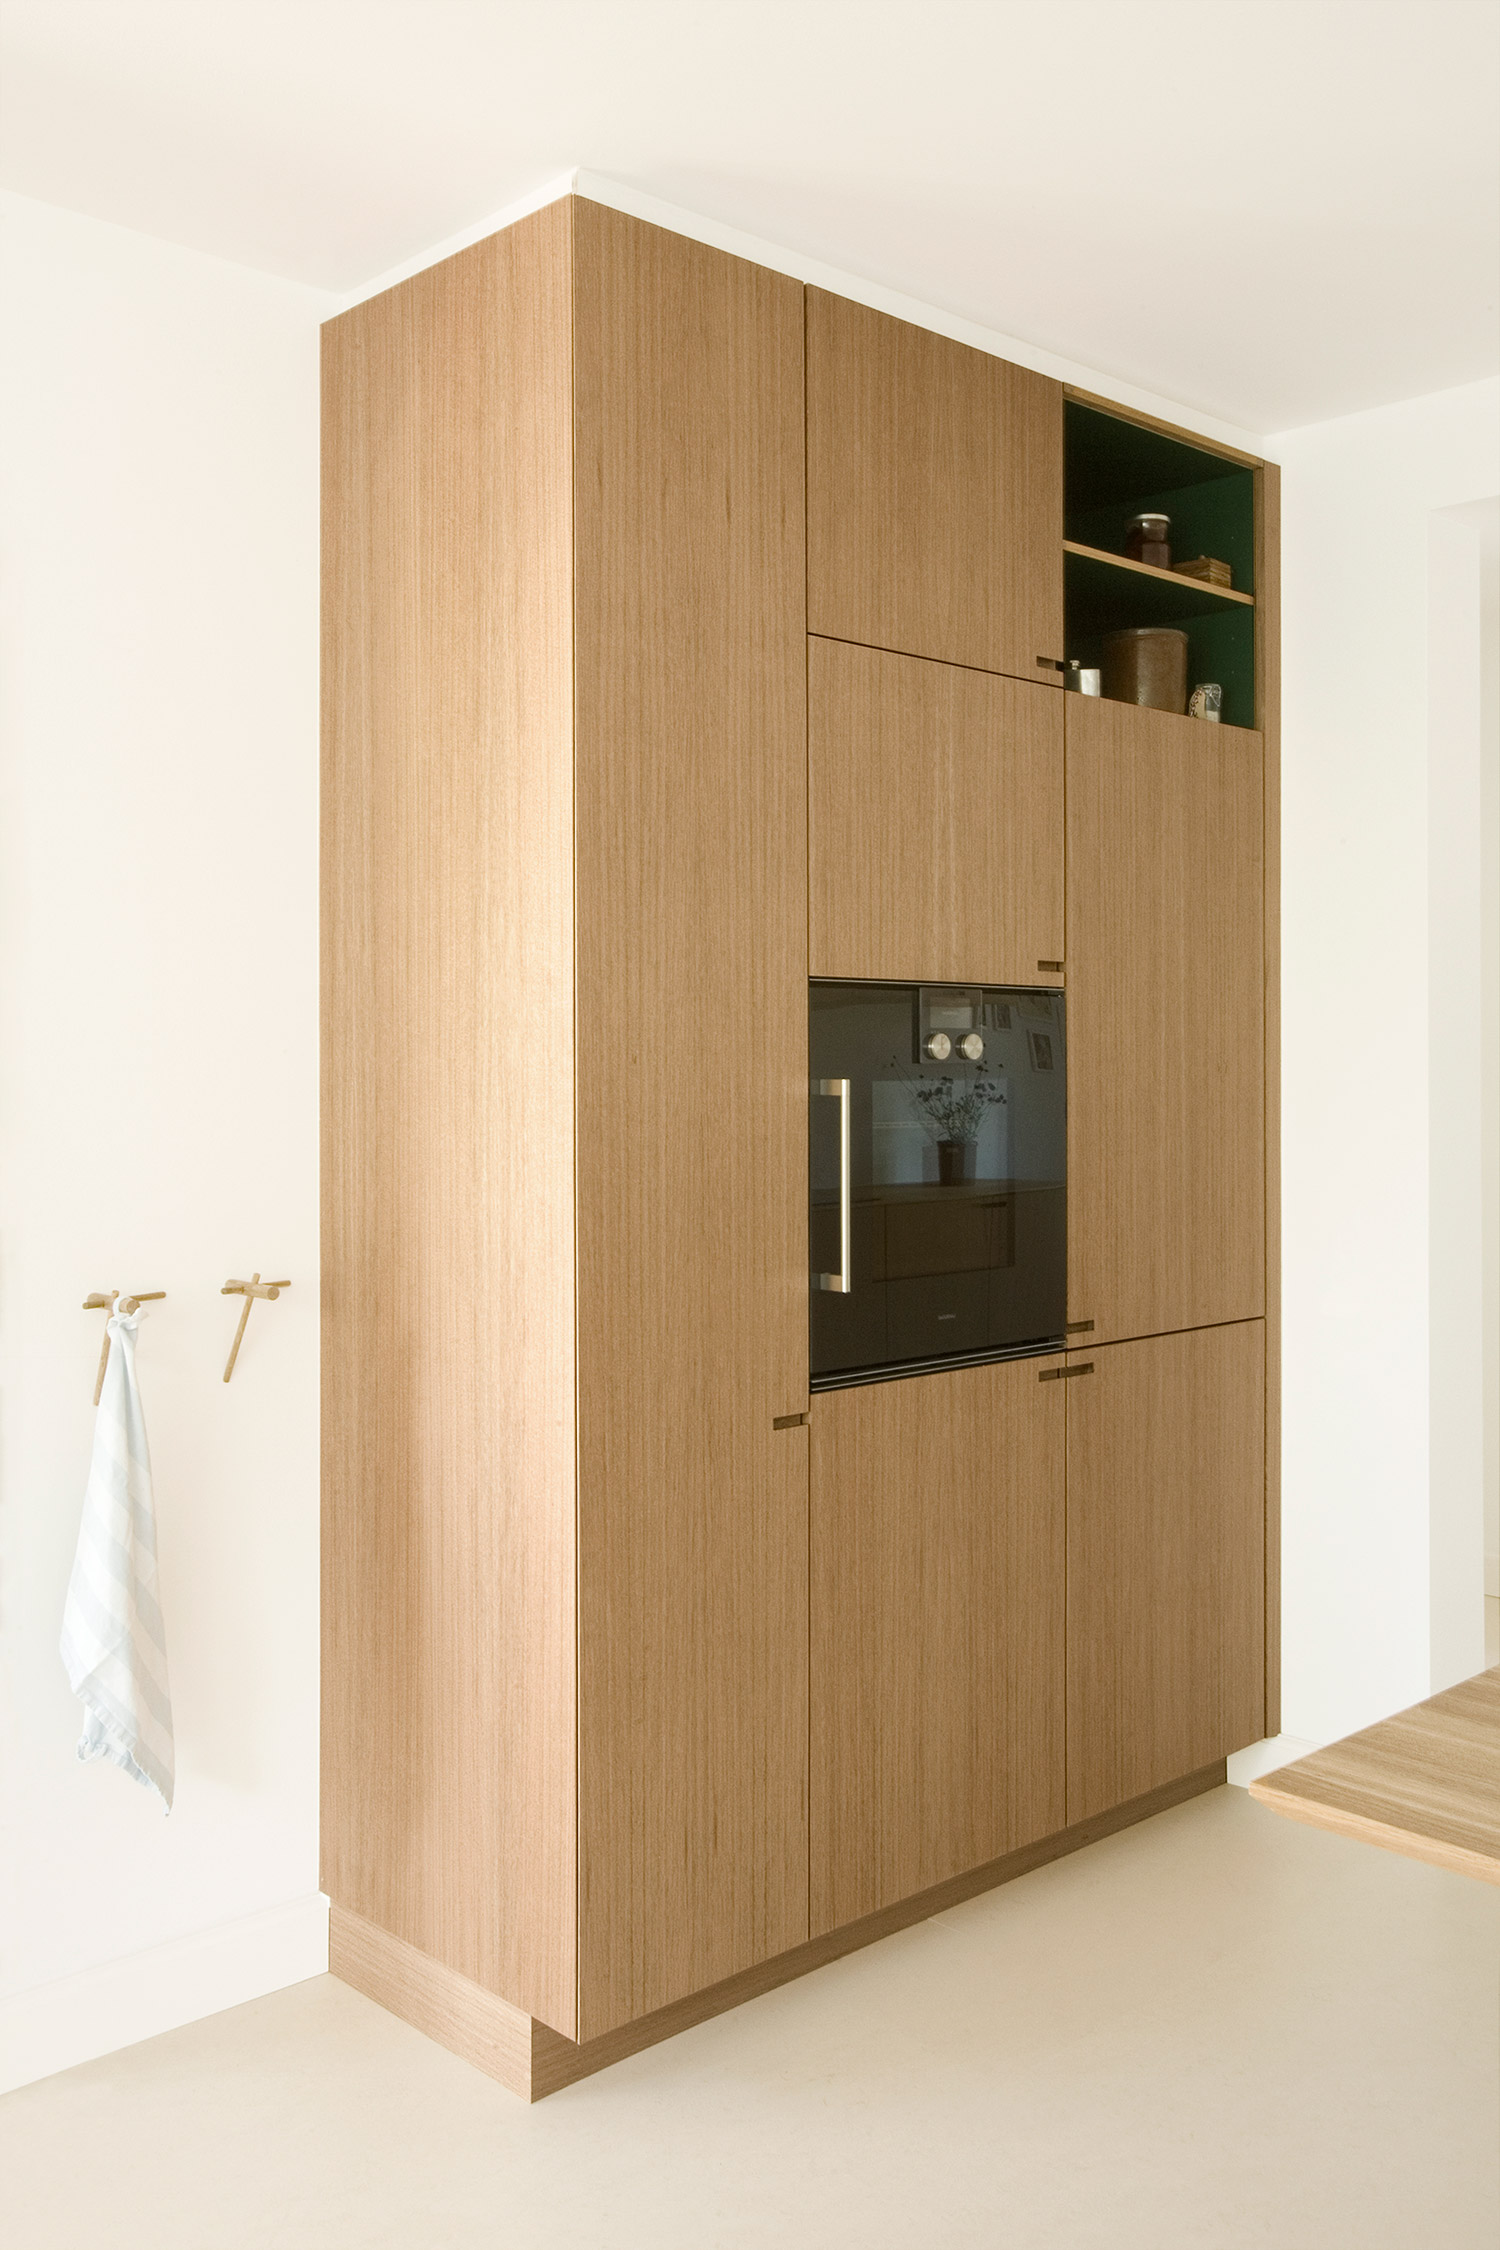 Minimalist kitchen with Gaggenau oven - designed and produced by Nicolaj Bo™ in Copenhagen™